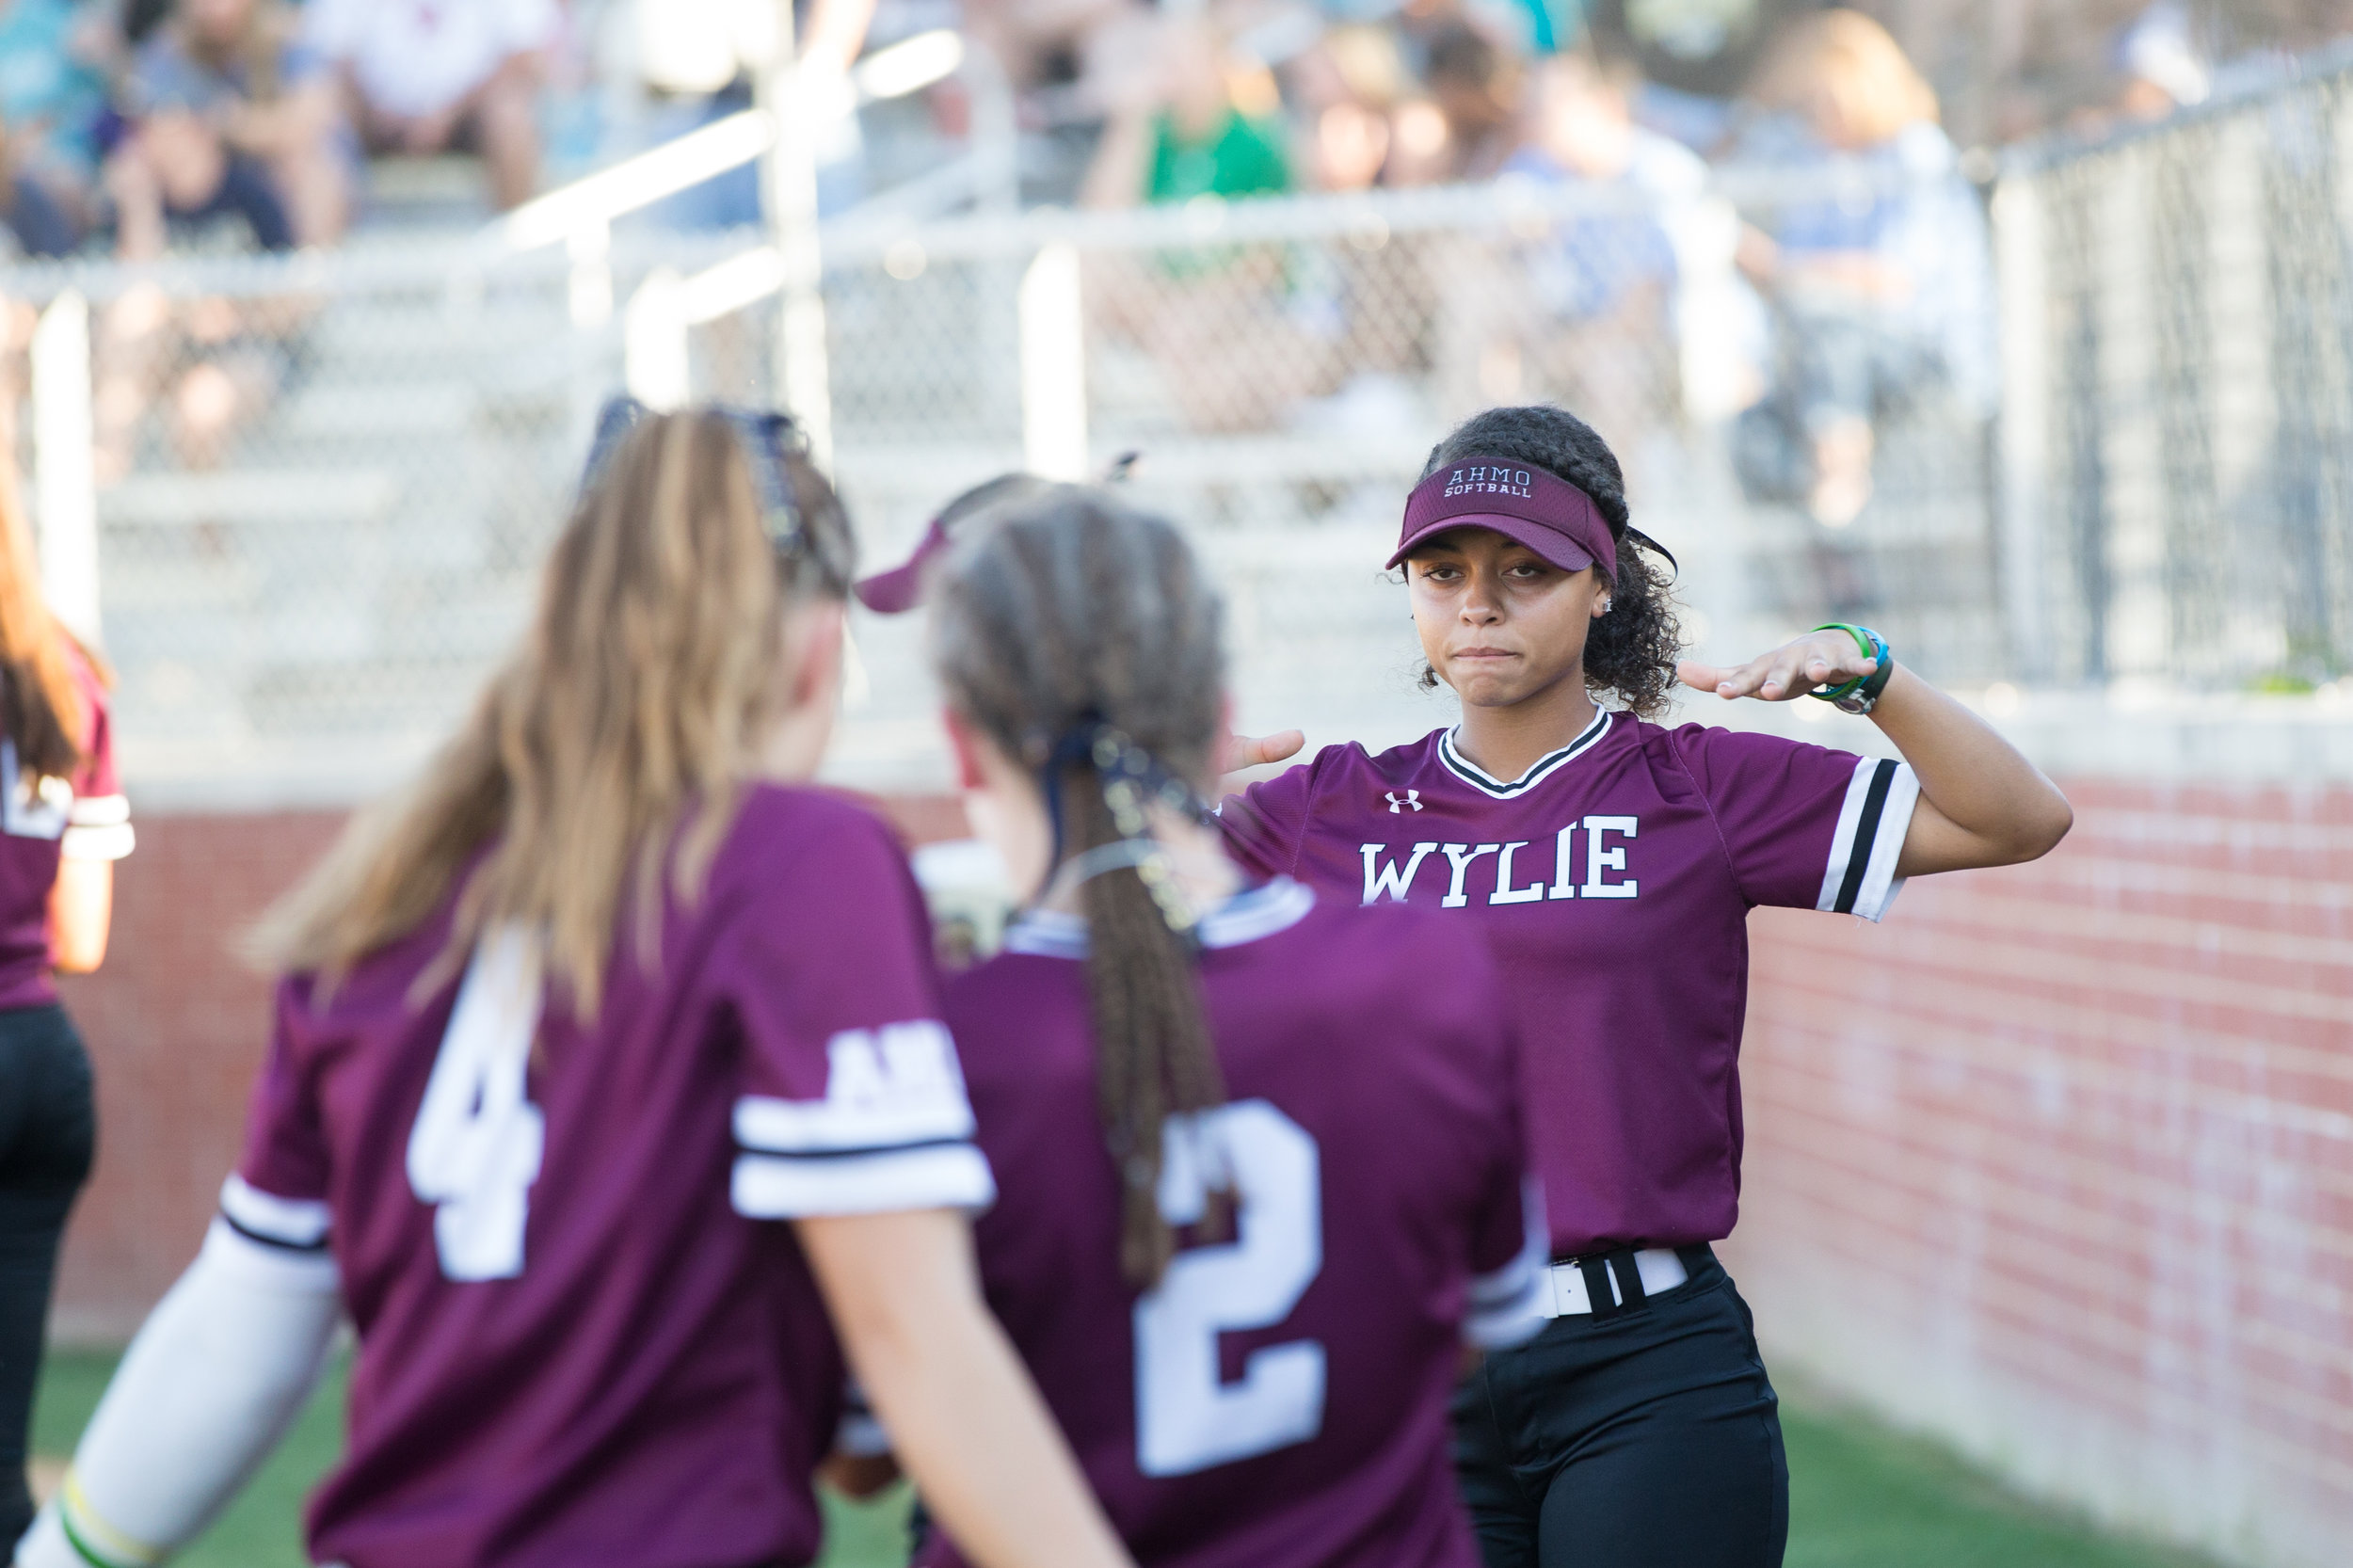 5_18 Wylie Softball-106.jpg